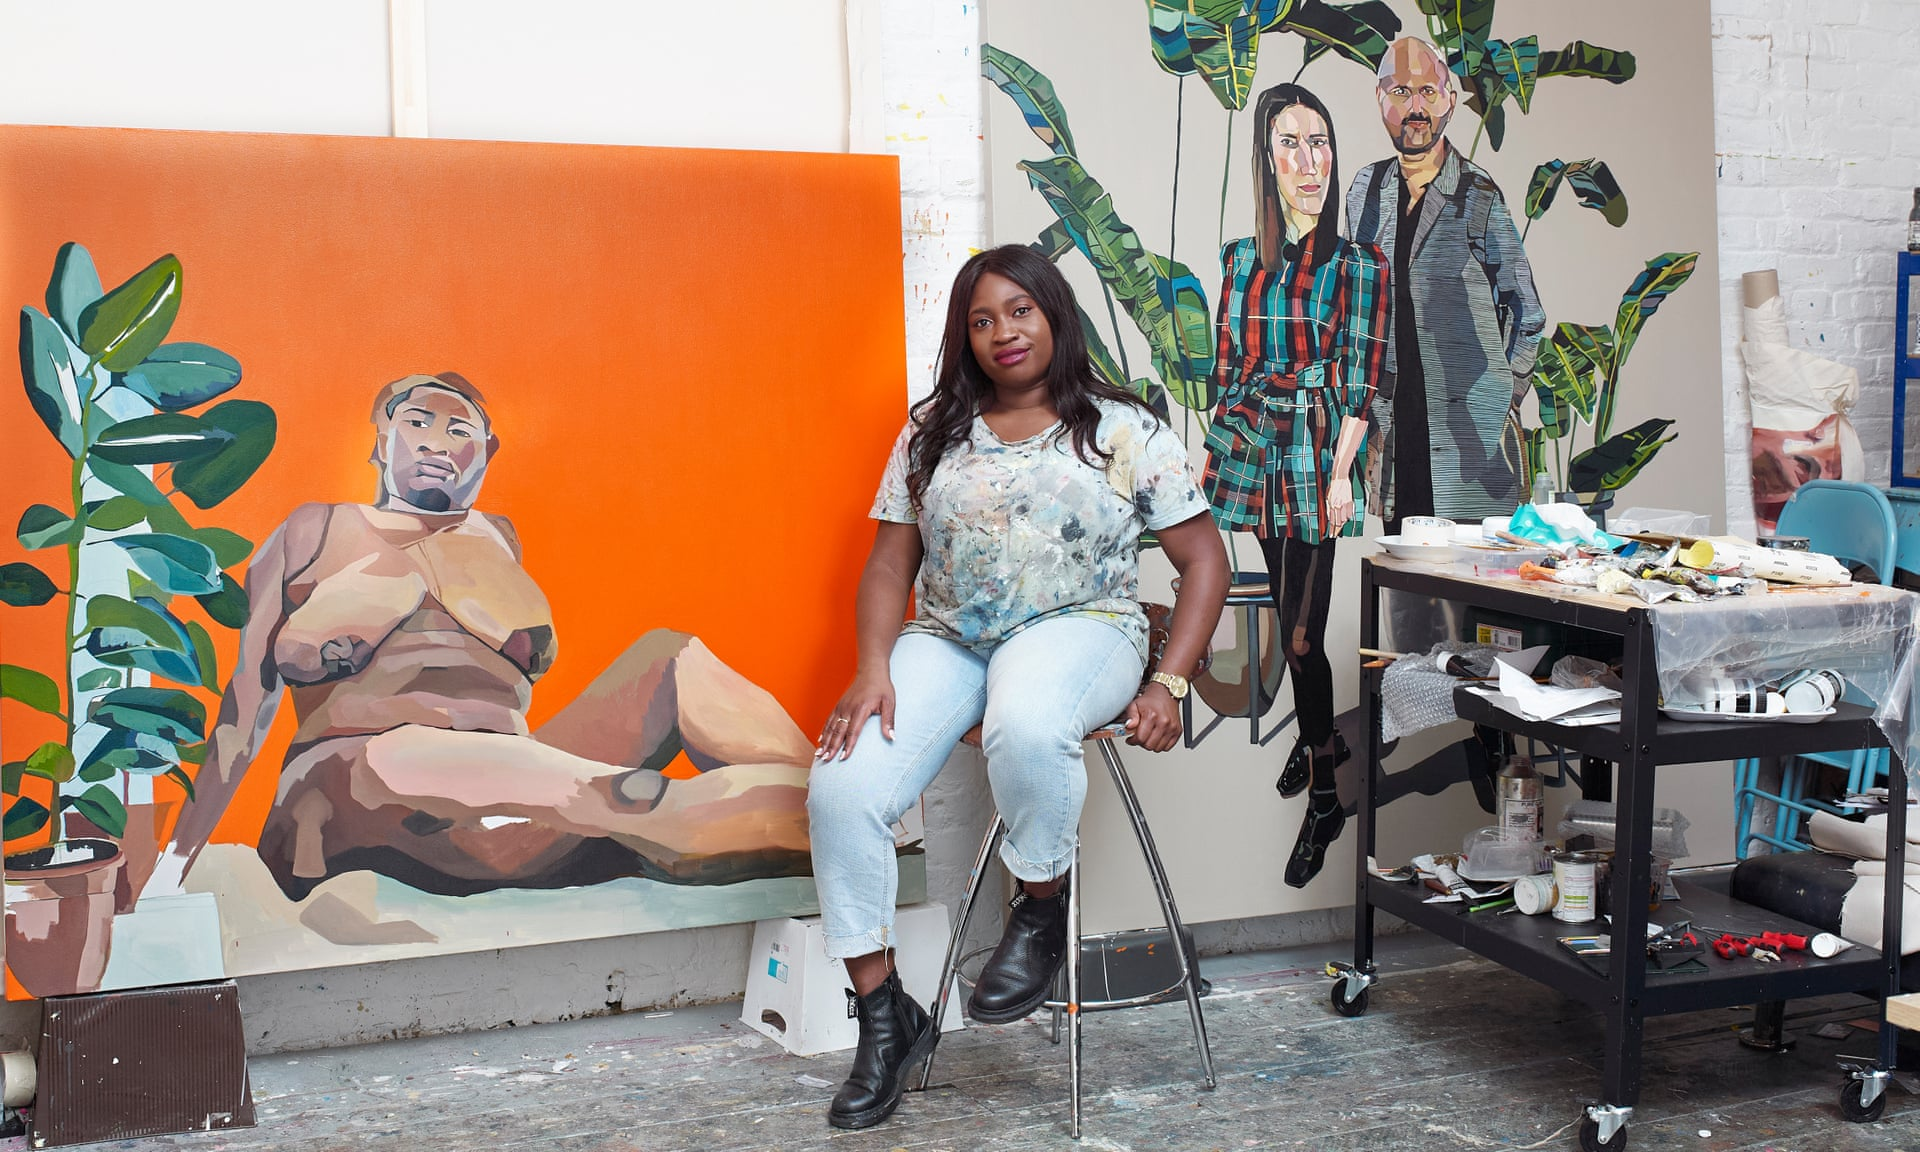 A dark-skinned woman sits on a stoll in an art studio in front of two large portrait paintings. Next to her is a cart filled with painting supplies.